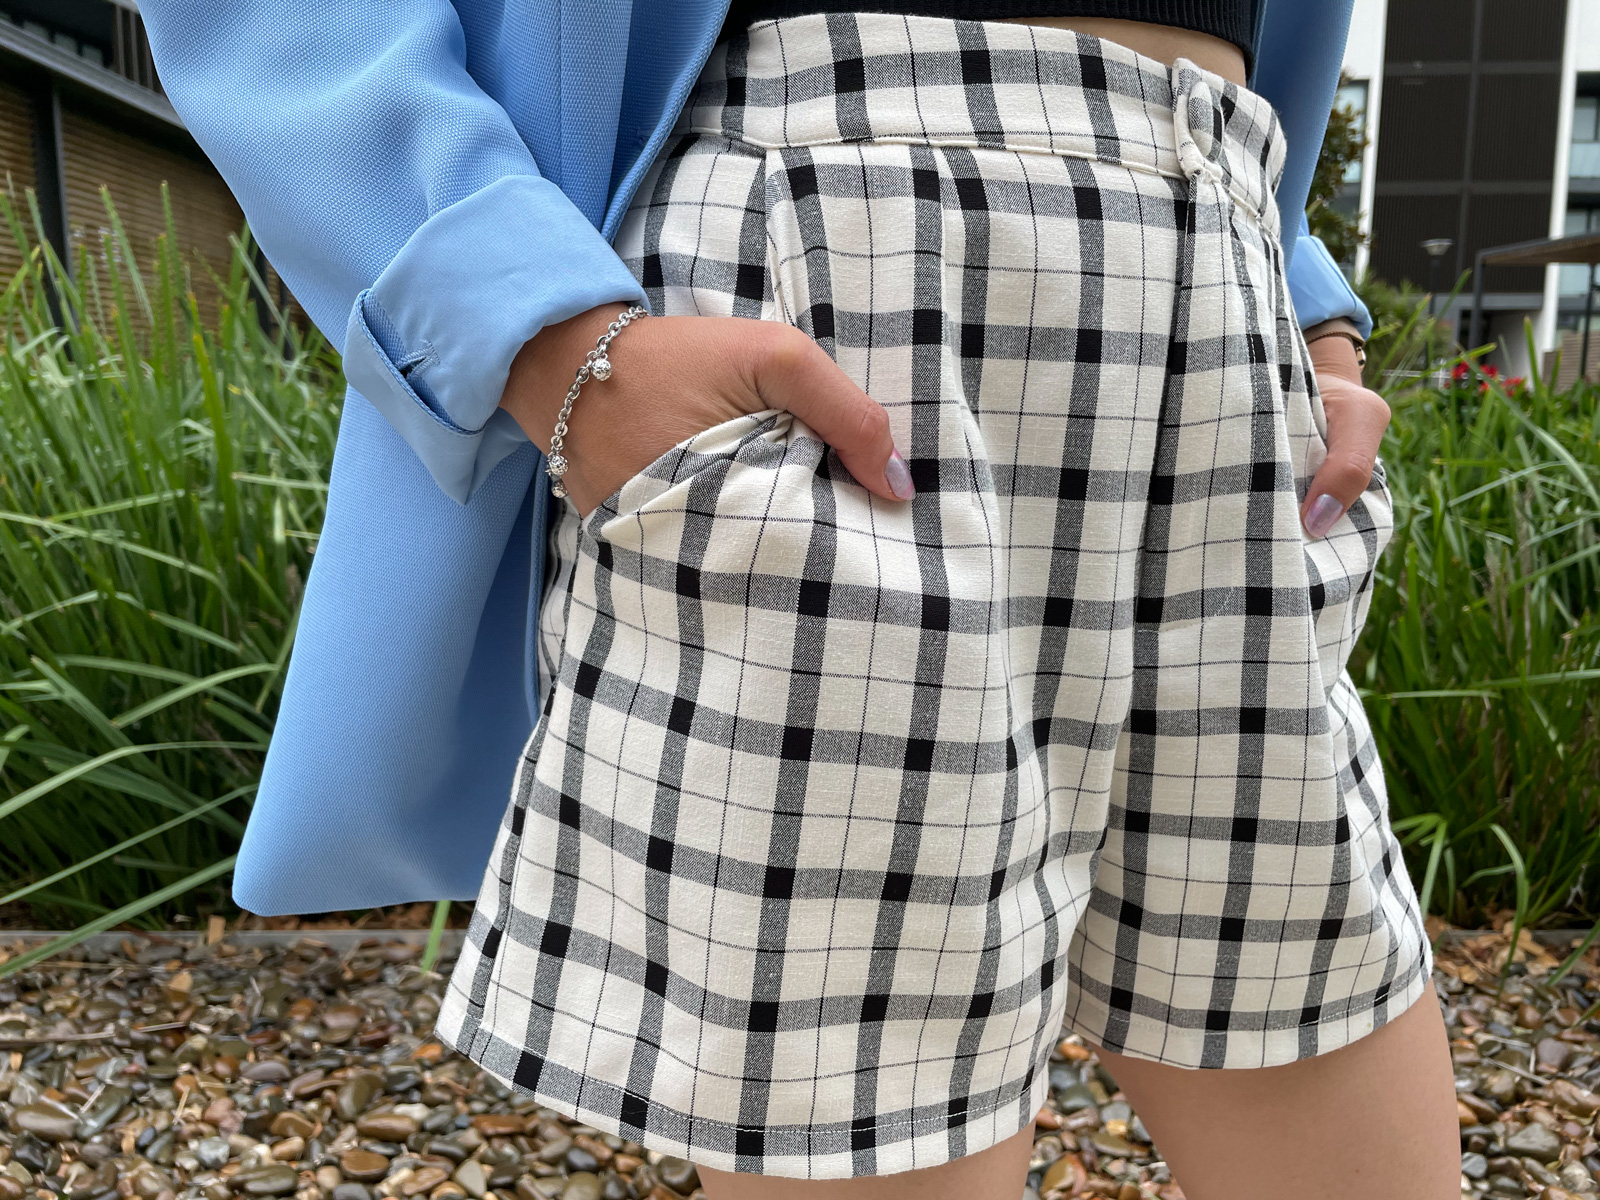 A close-up of a woman wearing shorts with a plaid print. She has her hands in the pockets.